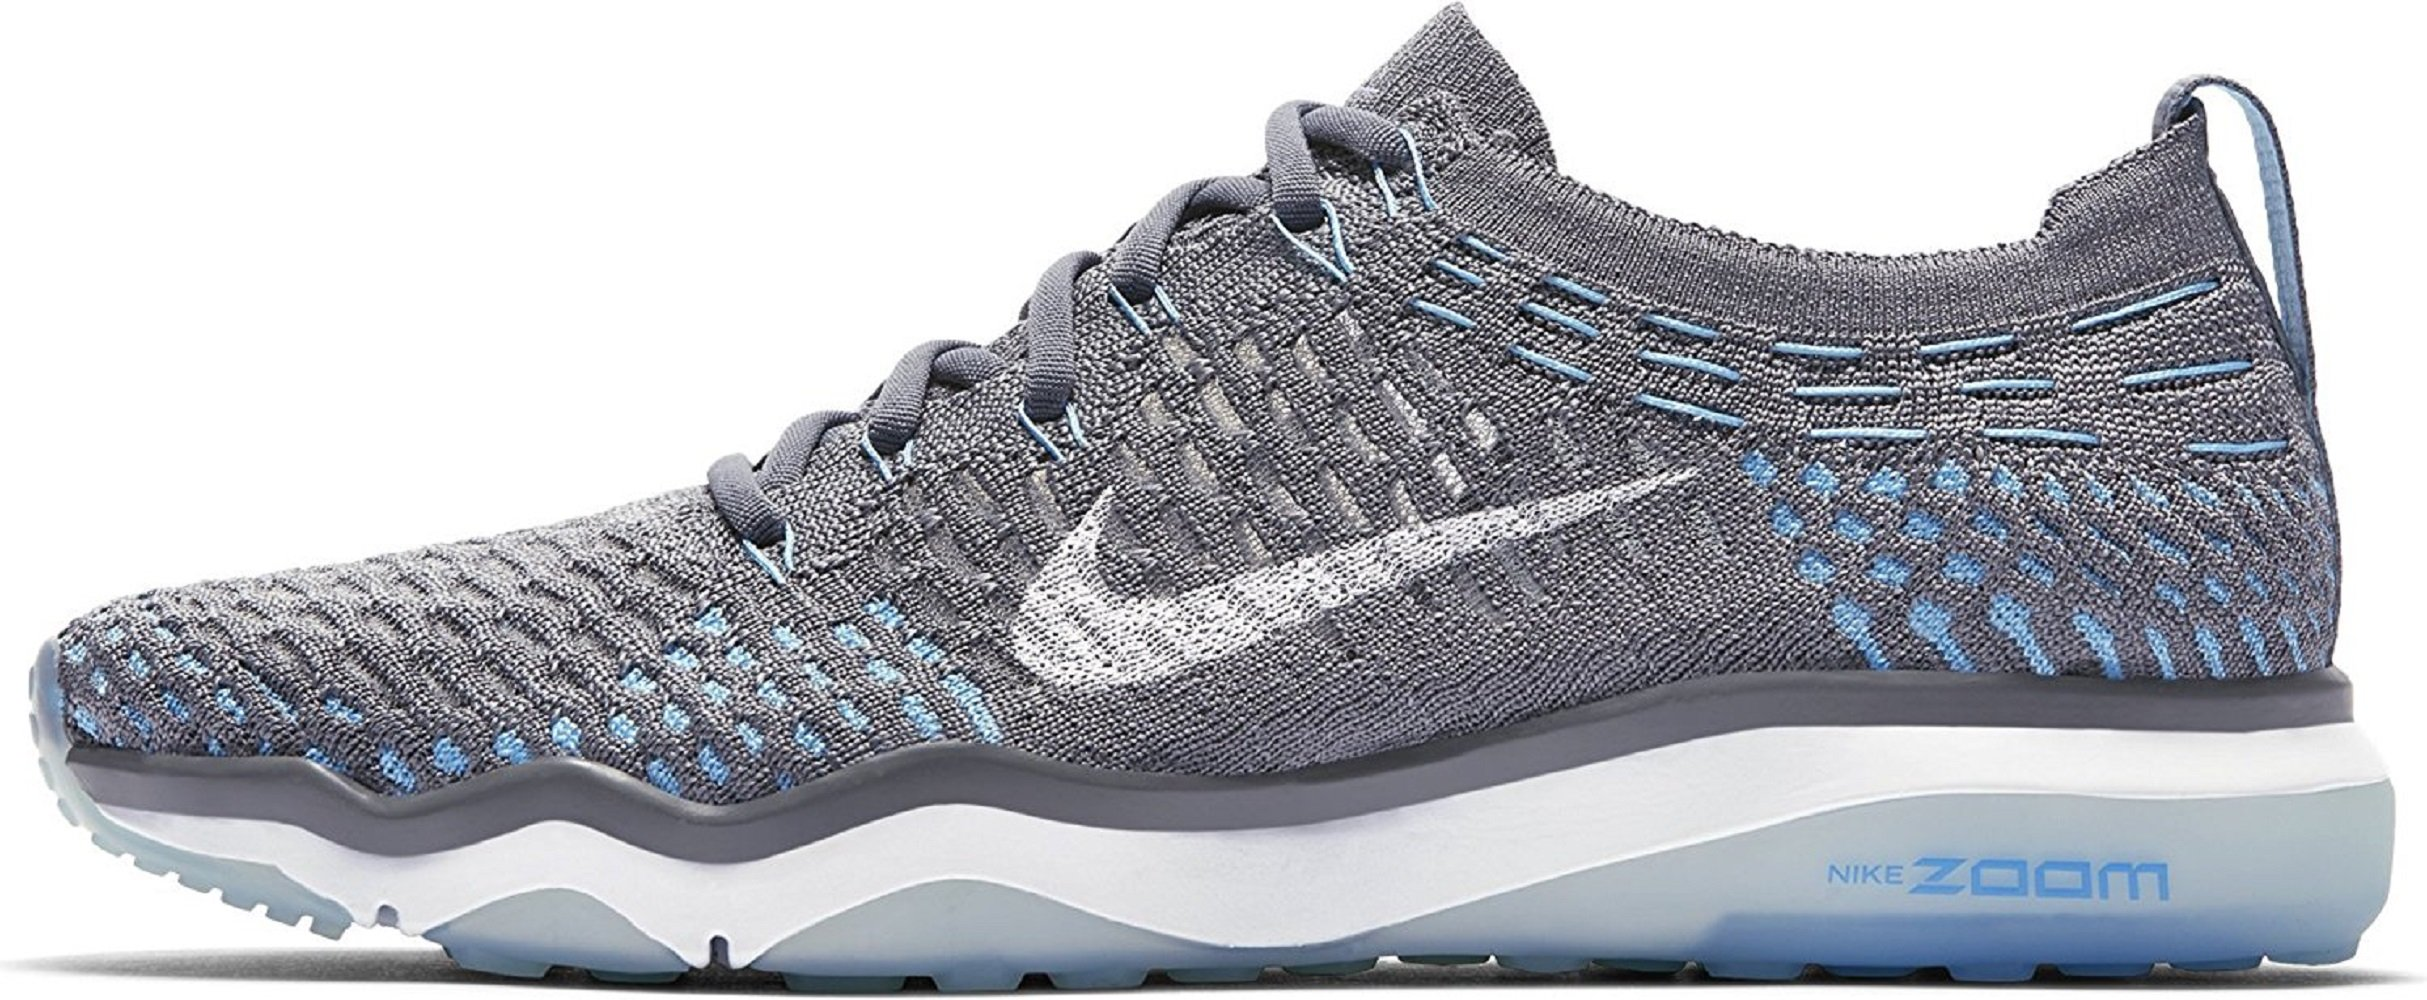 NIKE Women's Air Zoom Fearless Flyknit Running Shoes (10.5 Womens)